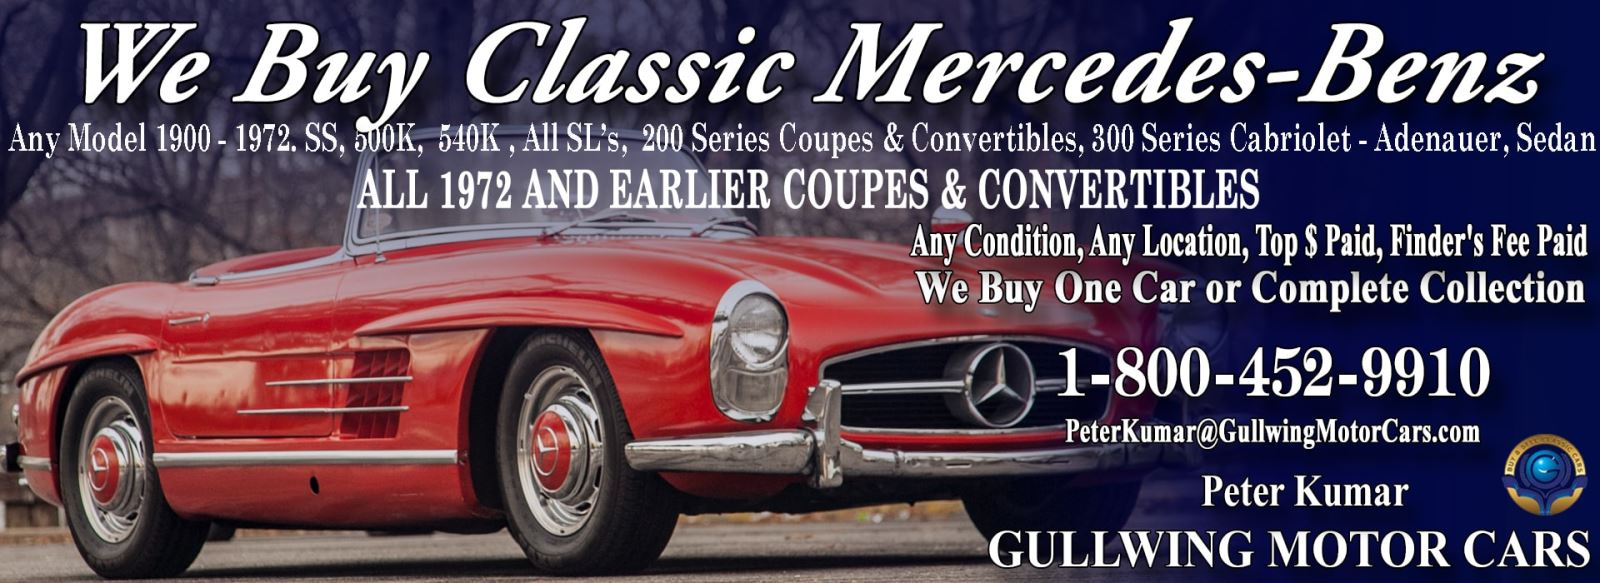 Classic Mercedes 300 Adenauer for sale, we buy vintage Mercedes 300 Adenauer. Call Peter Kumar. Gullwing Motor